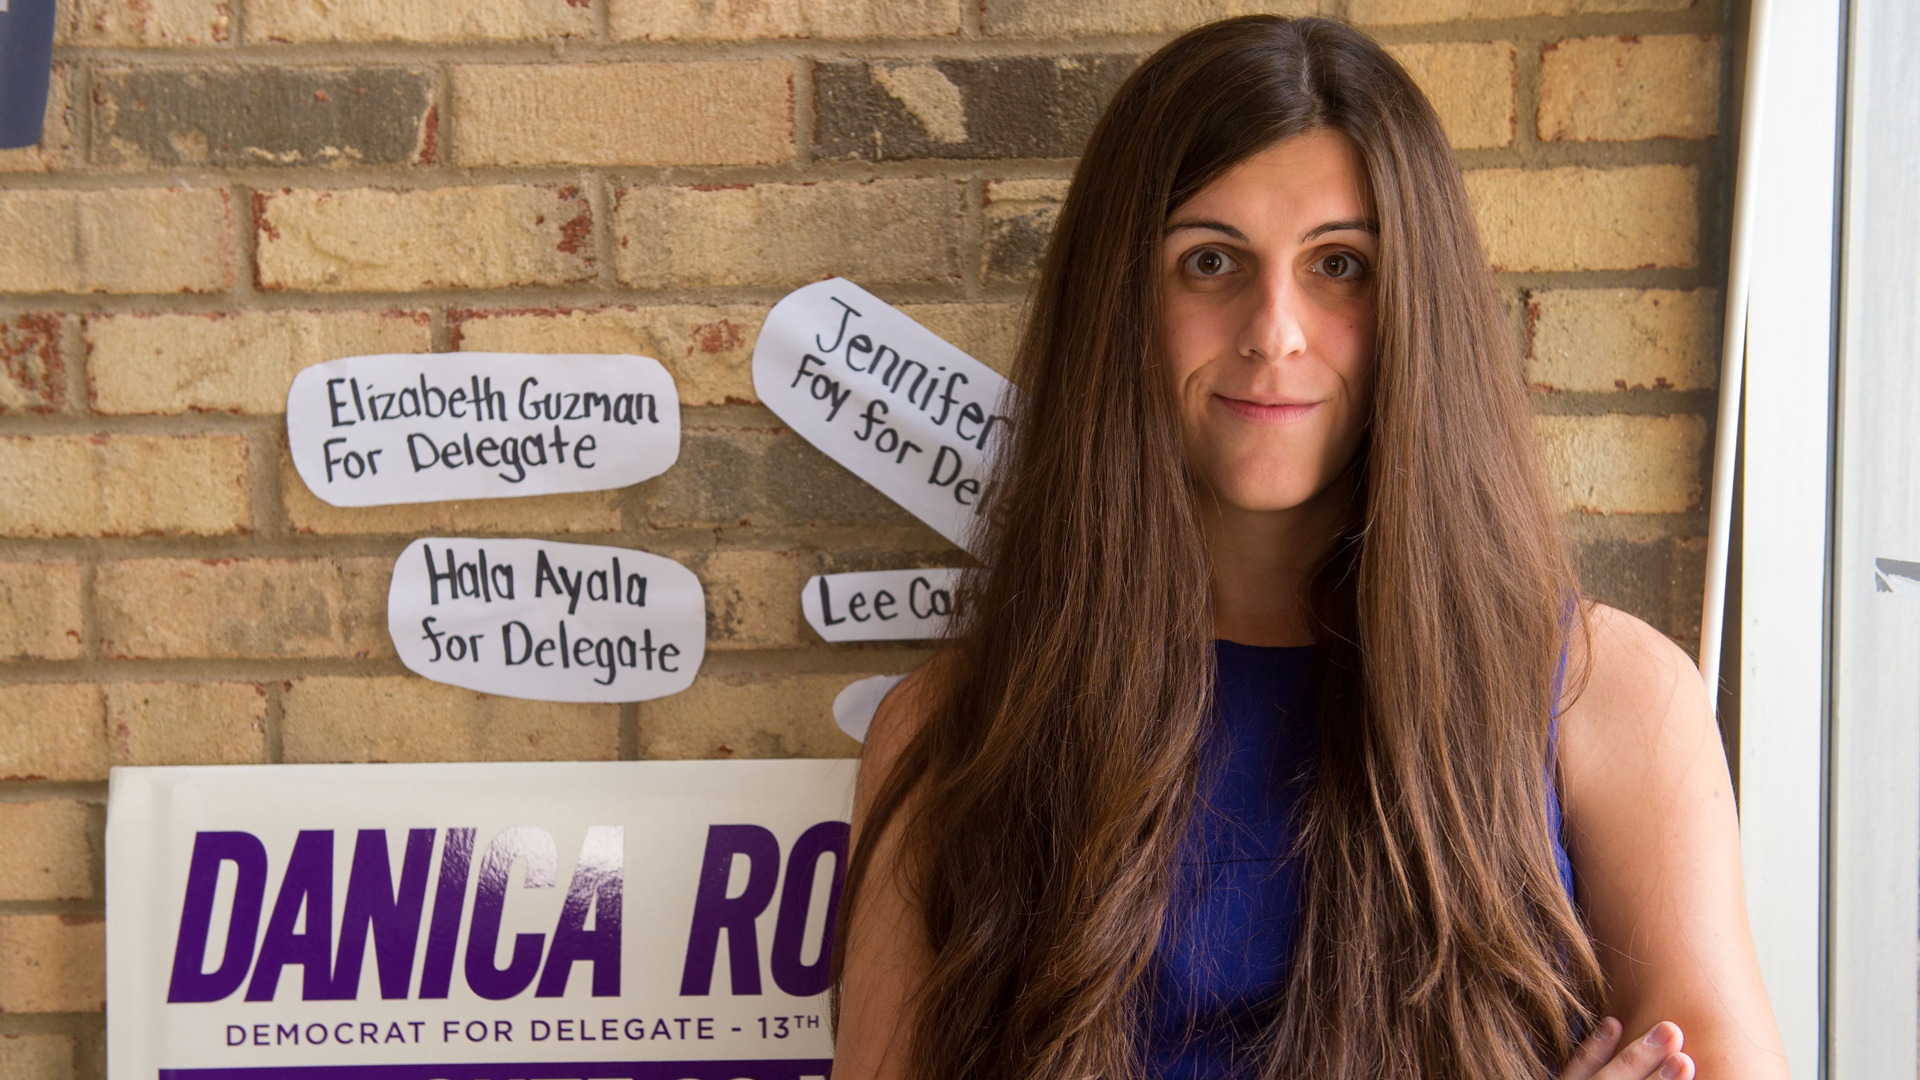 Danica Roem, a Democrat for delegate in Virginia's District 13, and who is transgender, sits in her campaign office on Sept. 22, 2017, in Manassas, Virginia. (Credit: PAUL J. RICHARDS/AFP/Getty Images)